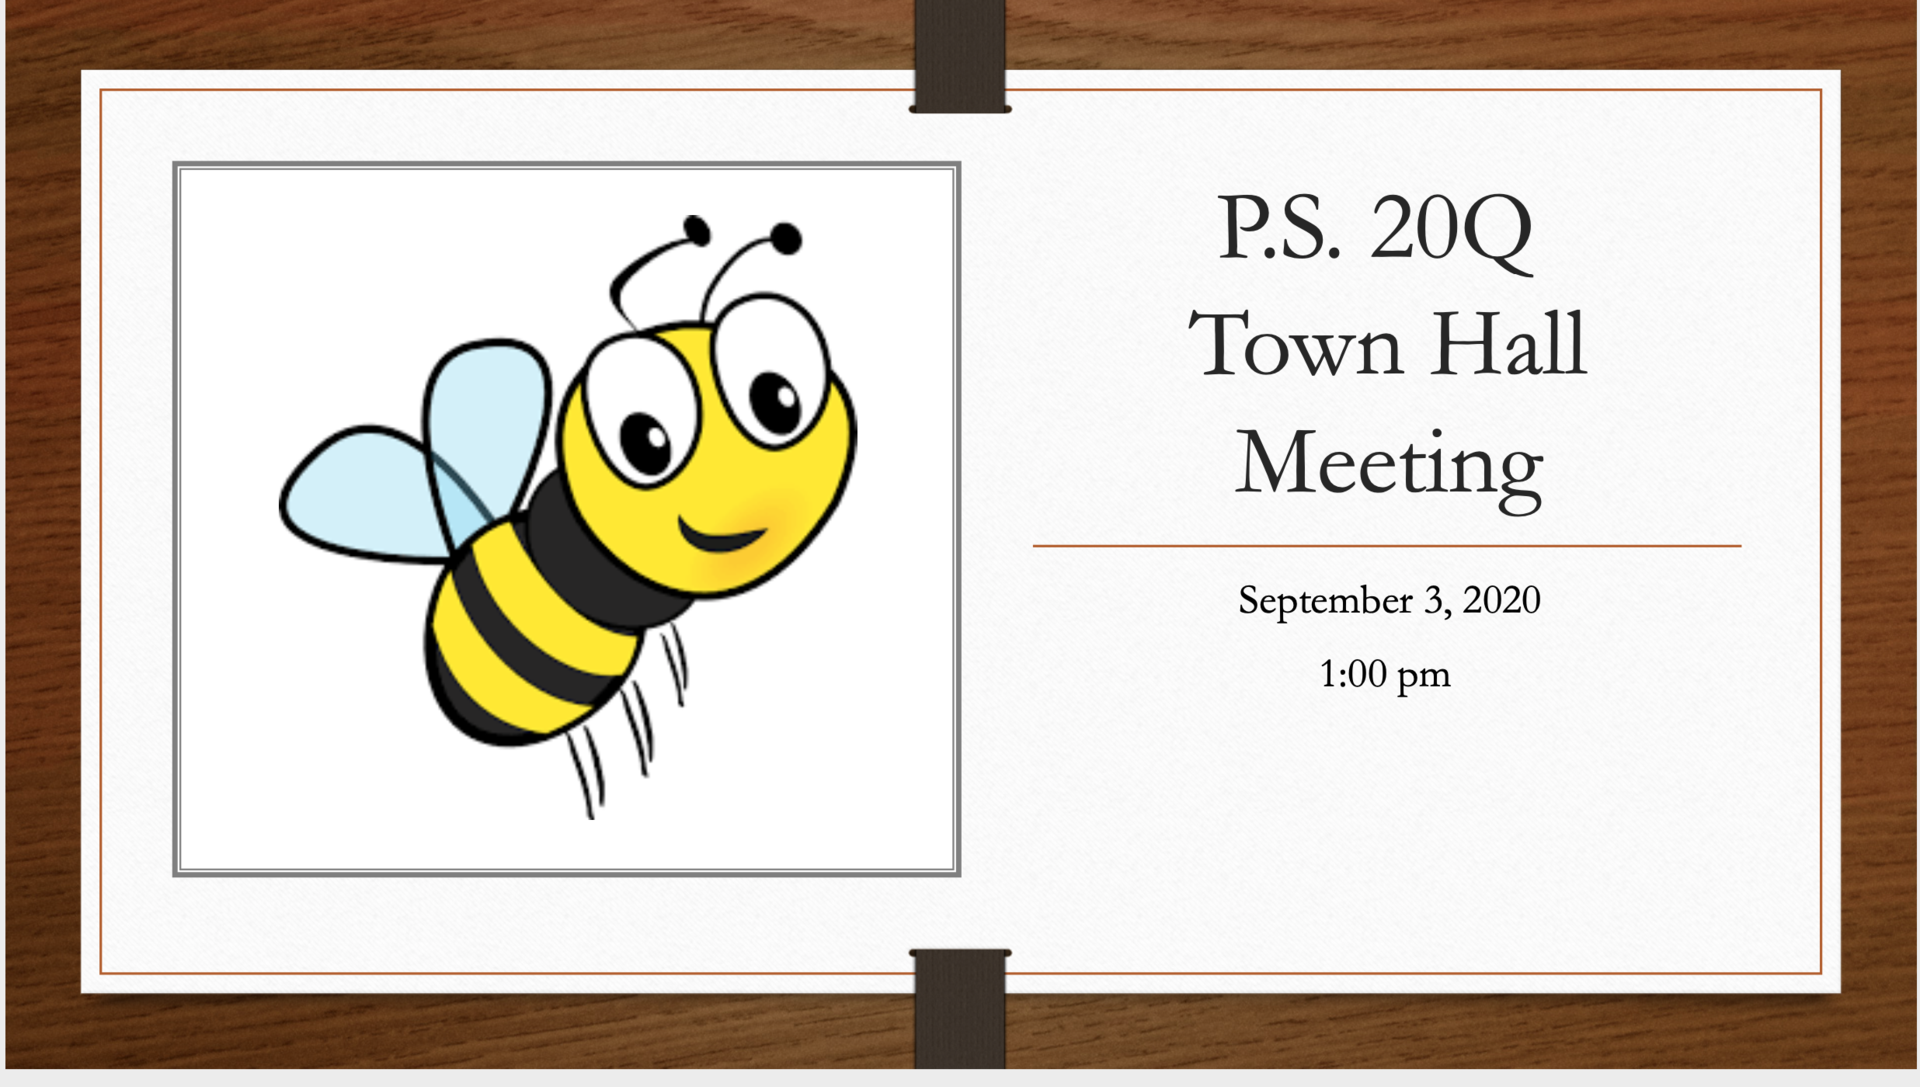 first page of the Town Hall Powerpoint Presentation includes a Yellow and Black PS 20 Smiling Bowne Bee